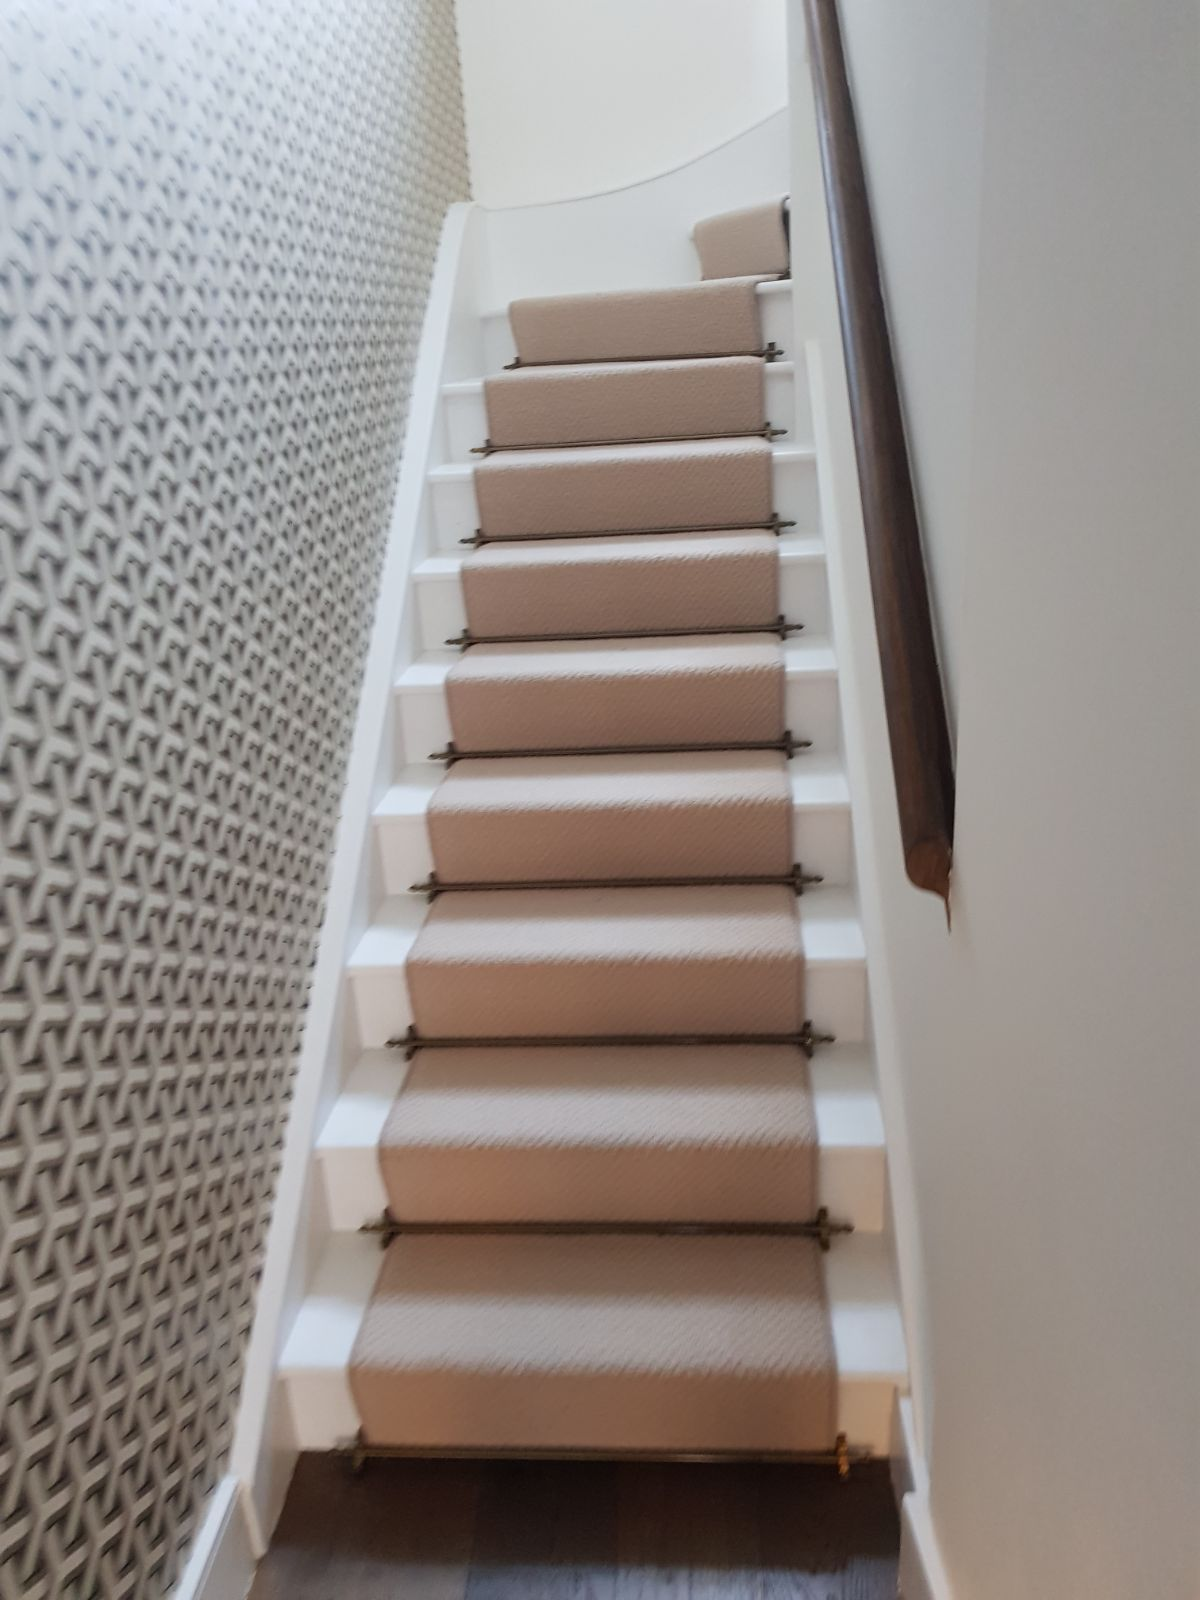 PORTFOLIO - STAIRS WITH STAIRRODS INSTALLATION (4)